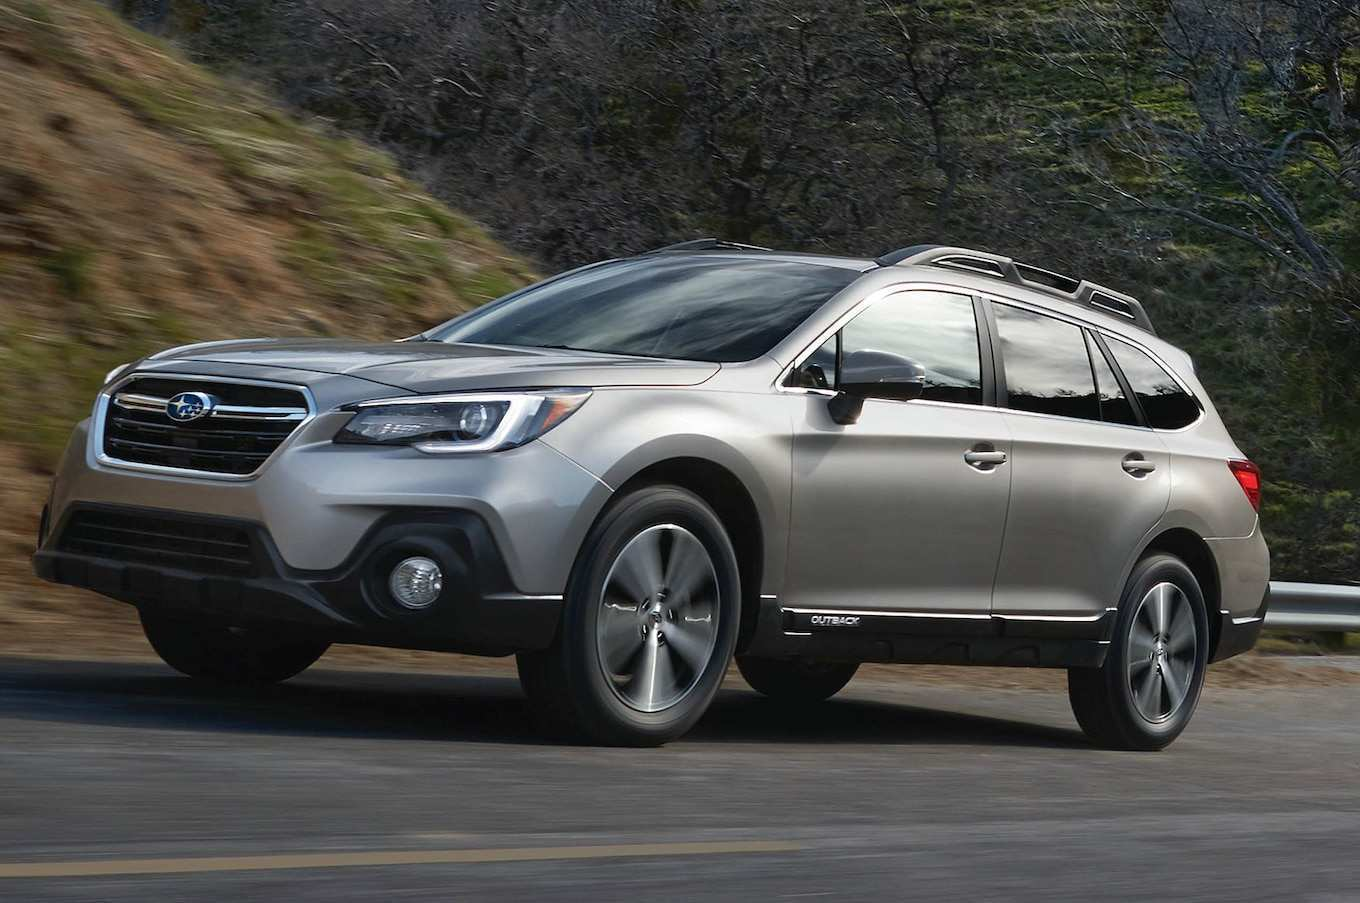 15 Gallery of 2019 Subaru Outback Redesign Specs by 2019 Subaru Outback Redesign